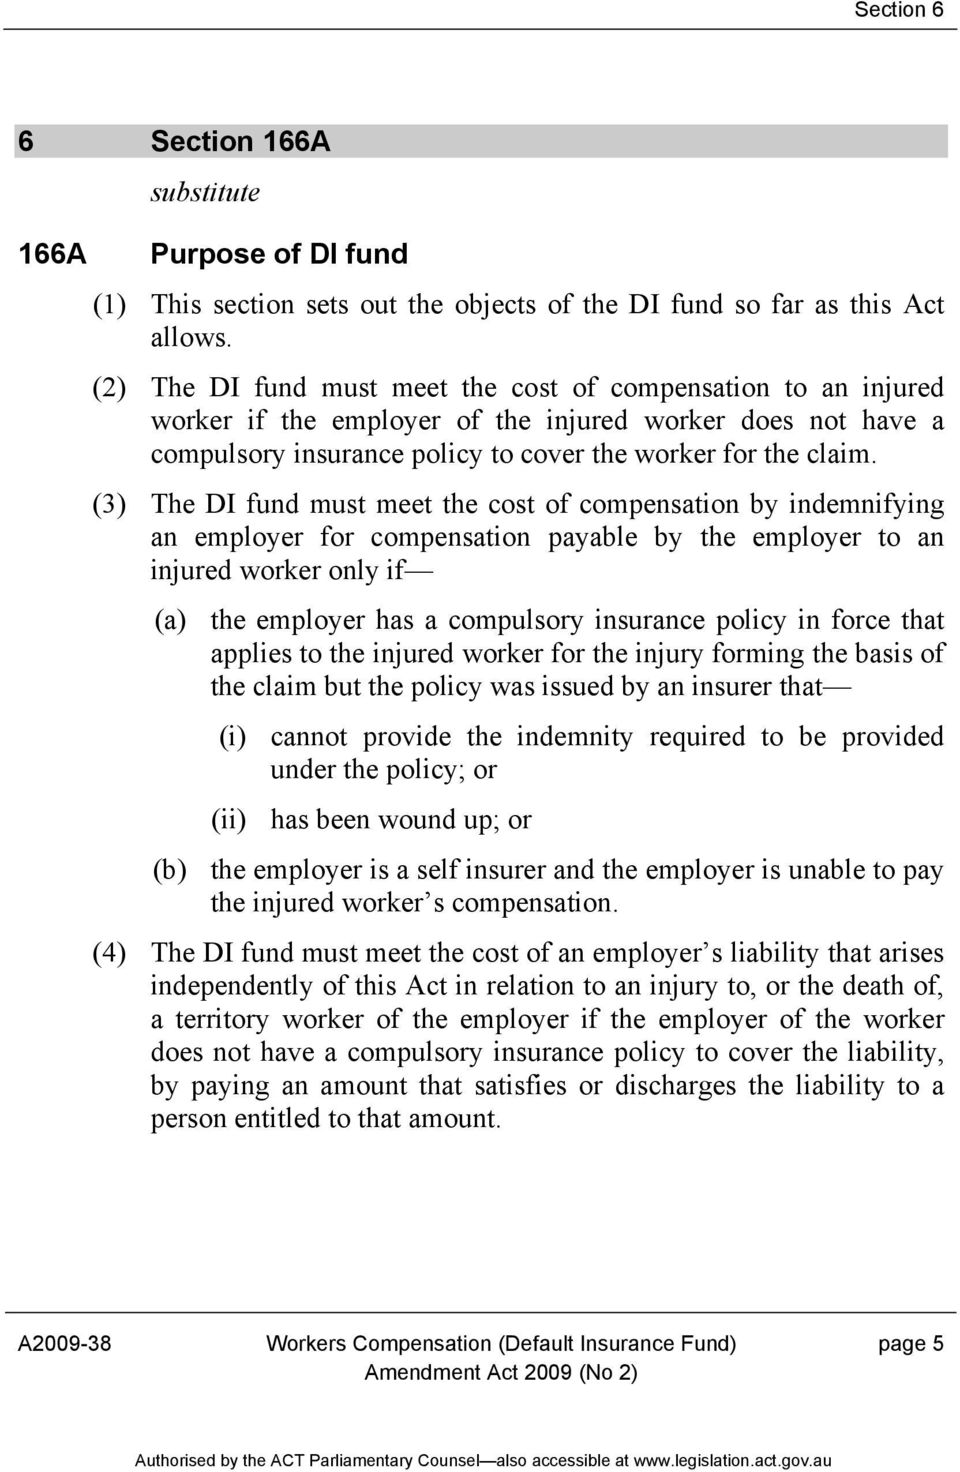 (3) The DI fund must meet the cost of compensation by indemnifying an employer for compensation payable by the employer to an injured worker only if (a) the employer has a compulsory insurance policy